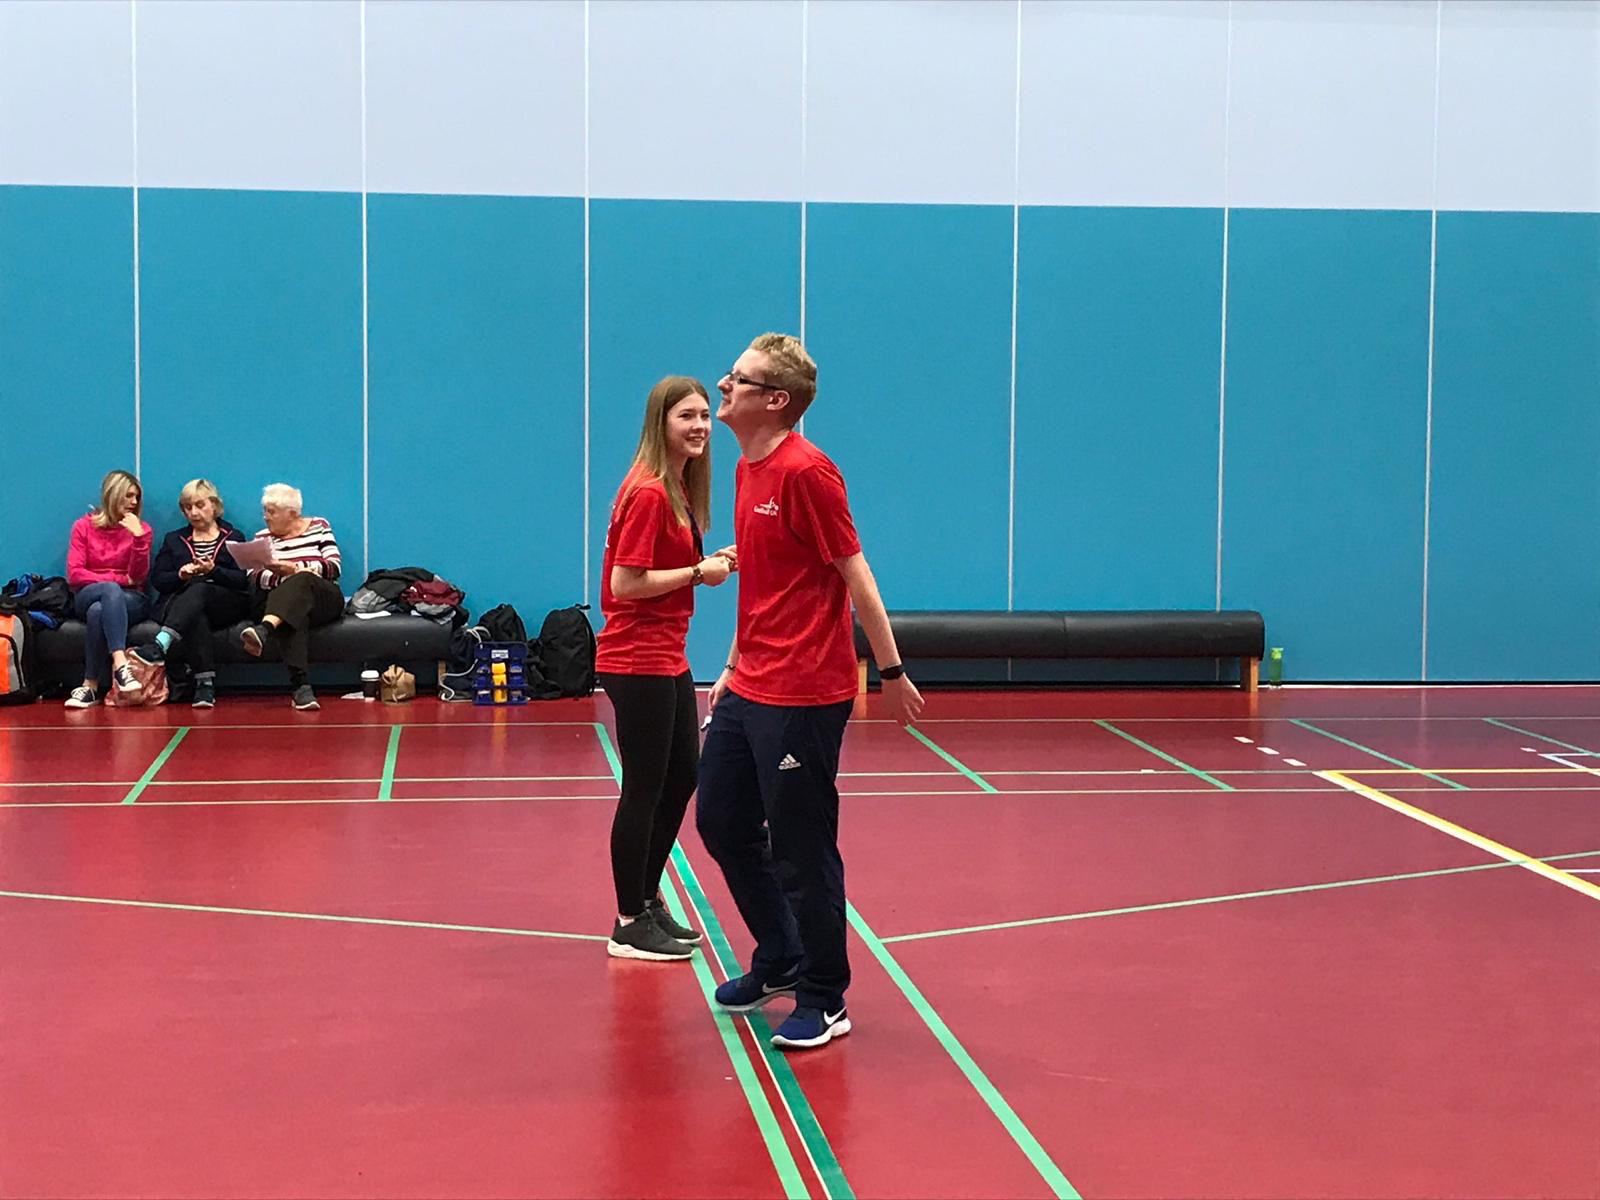 Stephen Newey and Imogen Winder officiating a goalball game.